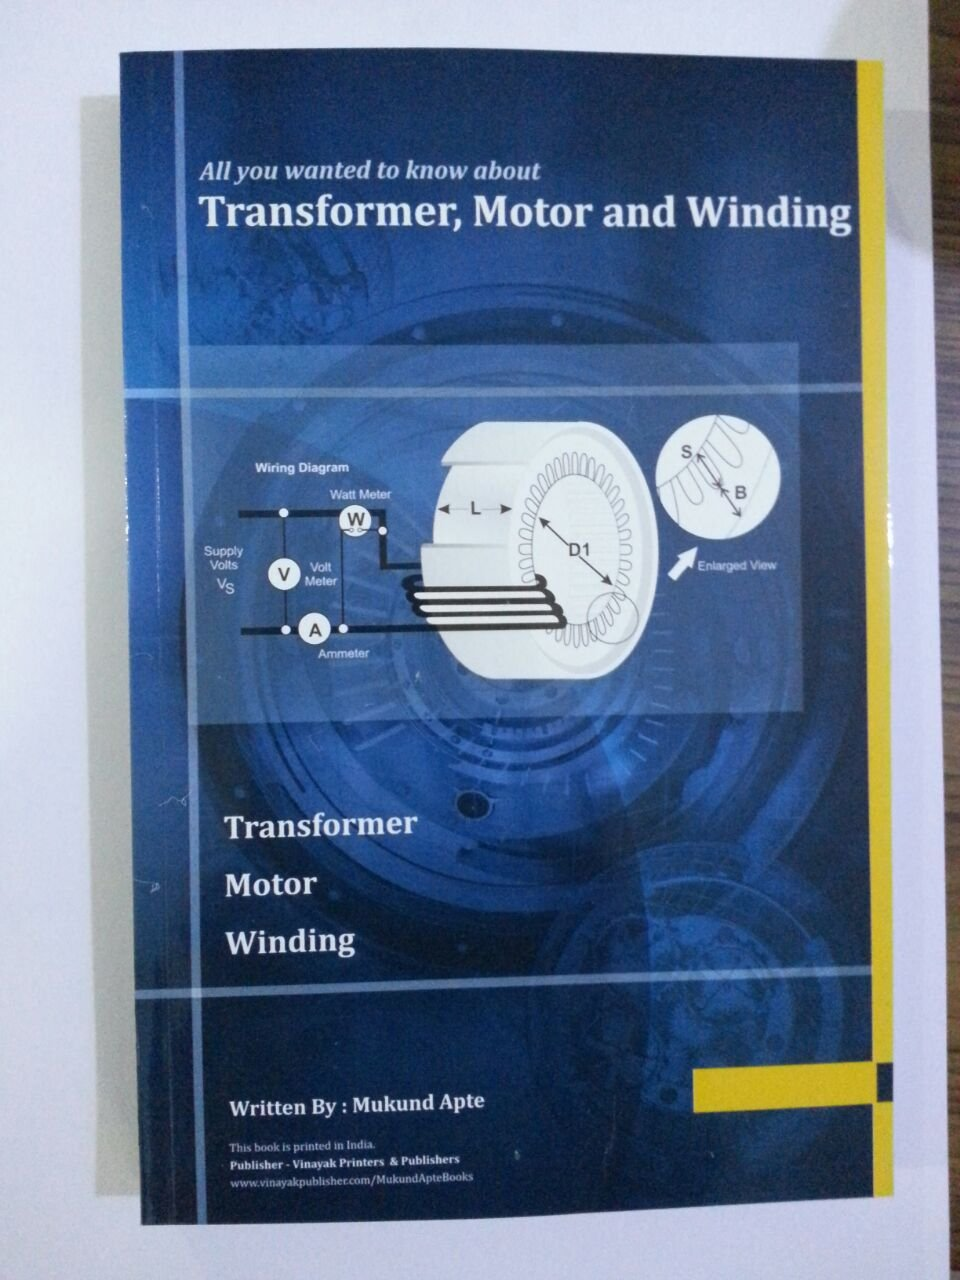 Buy All you wanted to know about Transformer, Motor and Winding Book ...